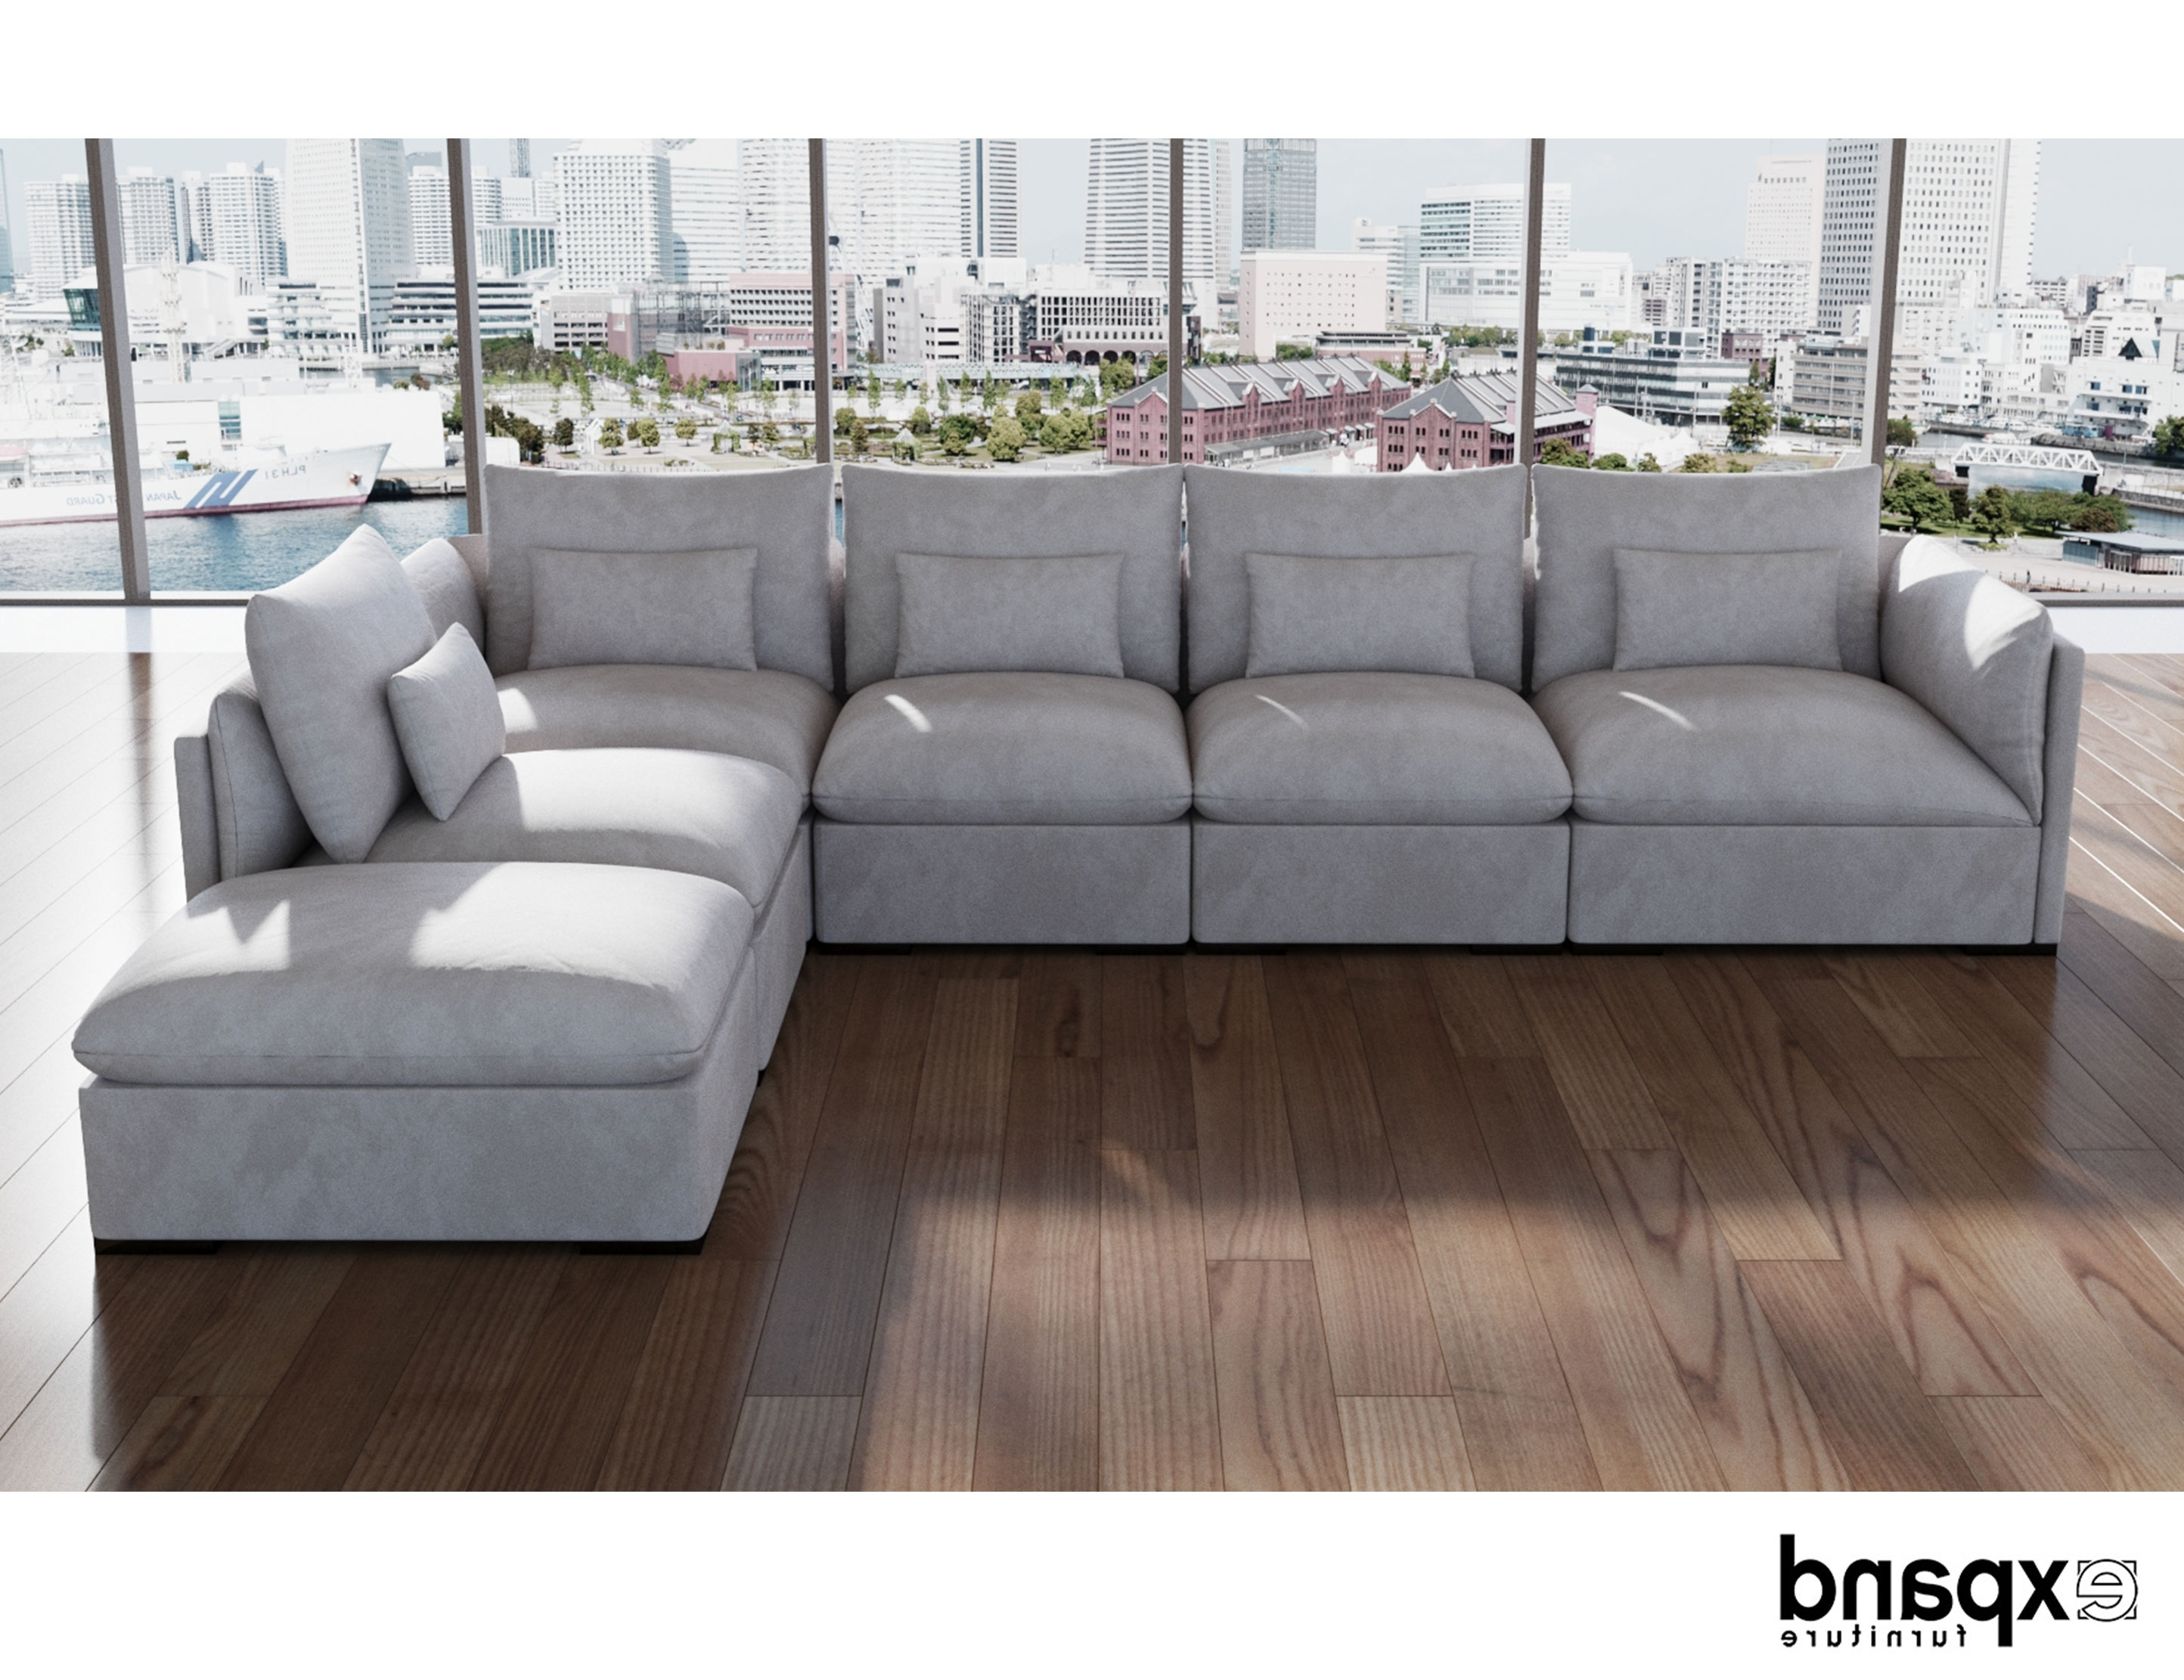 Expand Furniture Intended For Trendy Down Feather Sectional Sofas (View 7 of 15)